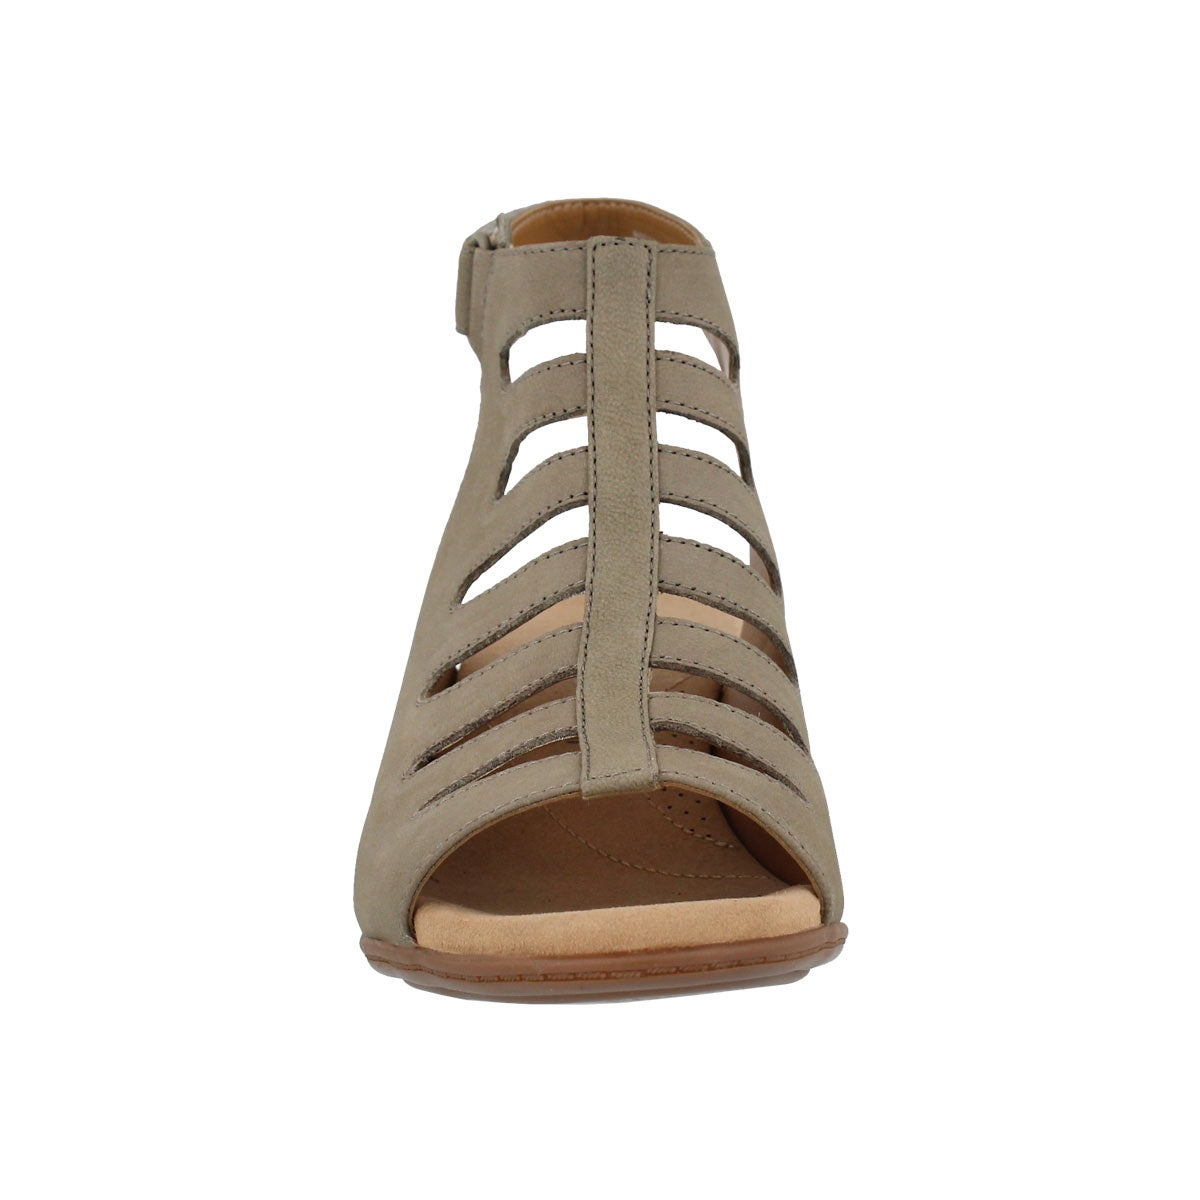 Lds Valarie Shelly sage dress sandal